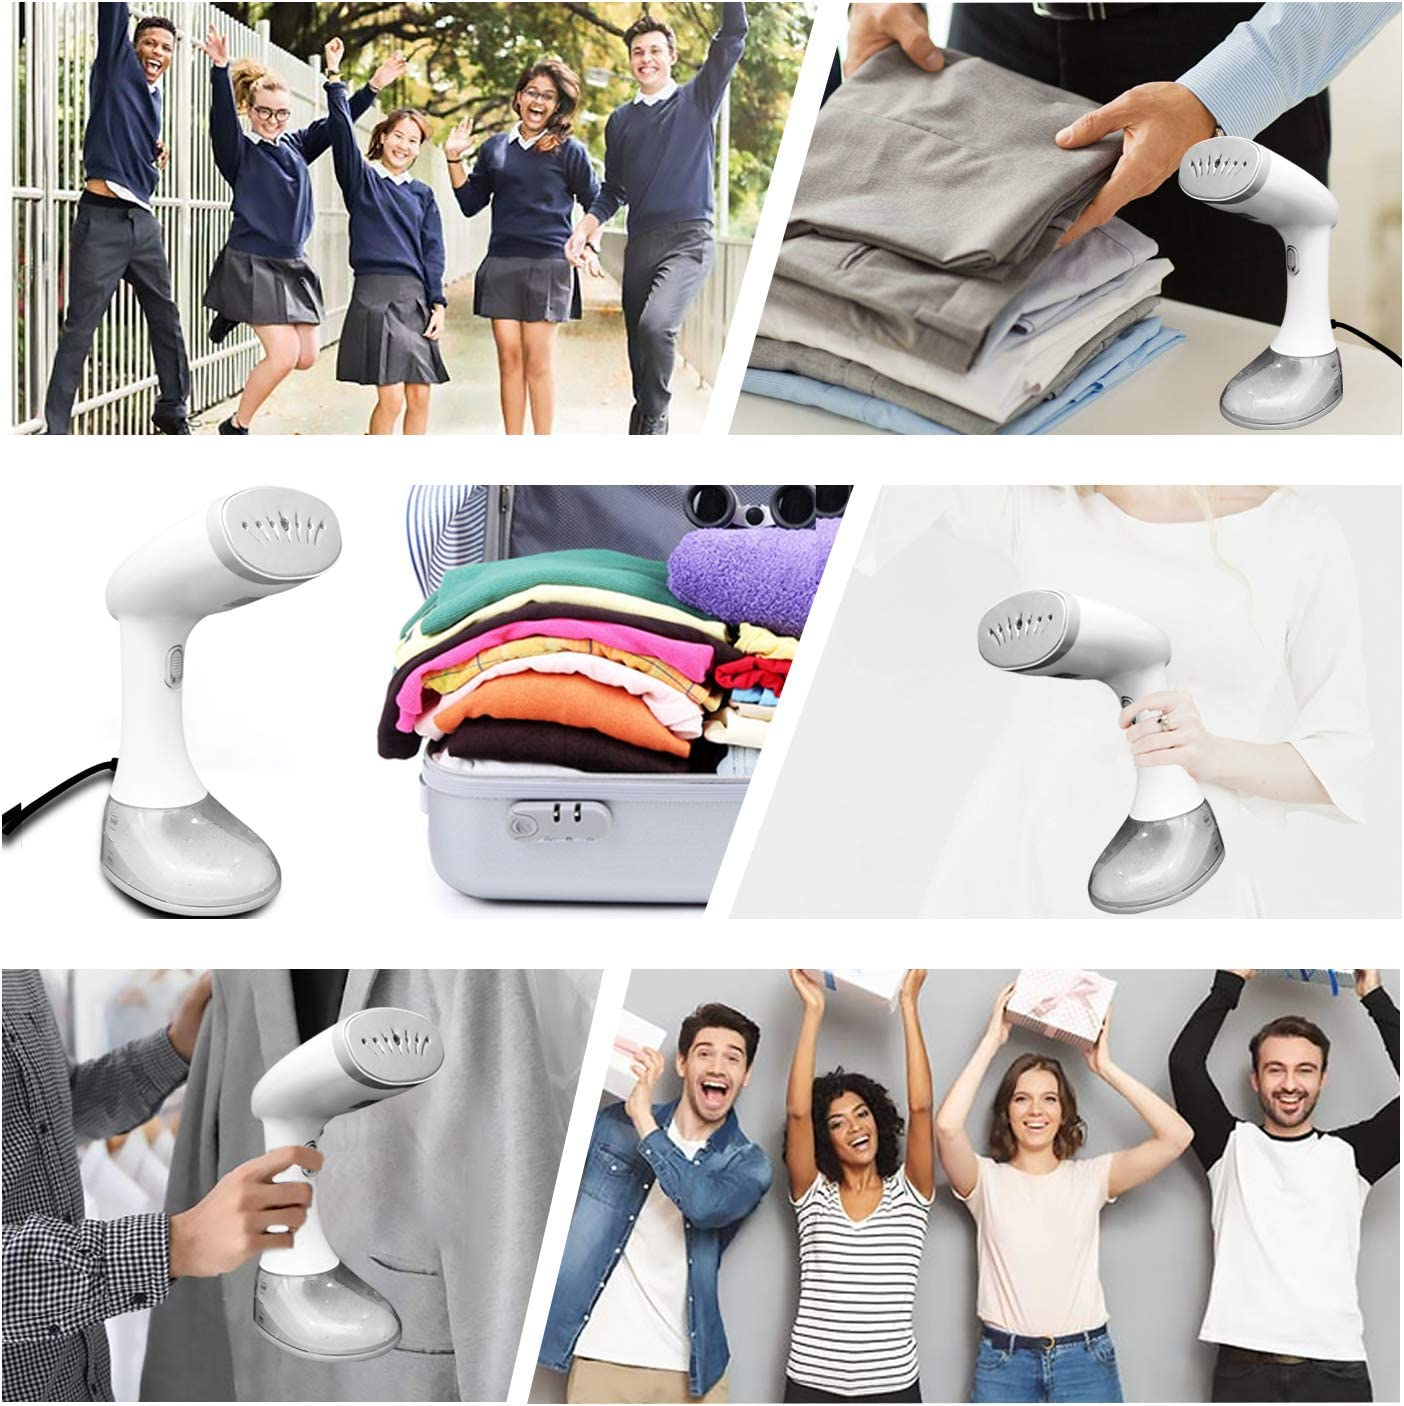 Home and Office 3 adjustable modes Handheld Garment Steamer 1640W 380ML Portable Hand Steamer for Ironing Wrinkles Remover for Travel BINKE Clothes Steamer Fast Heat-up